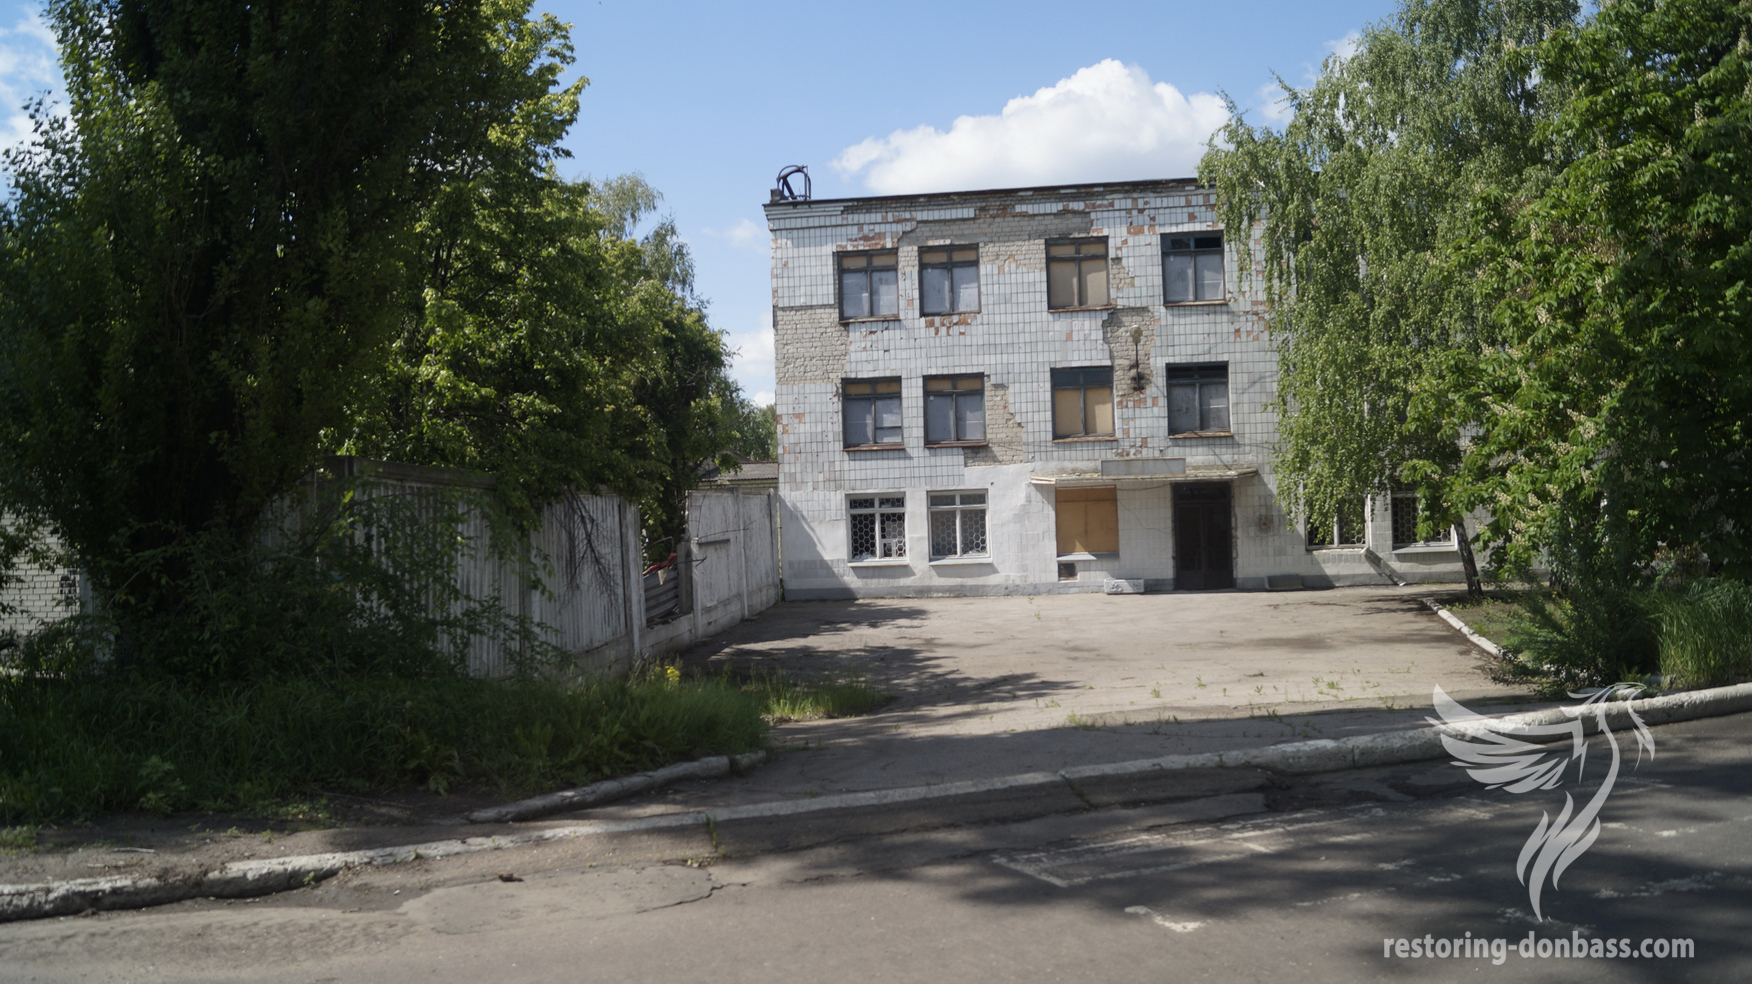 Marinka, Donetsk region. May, 2016. Destroyed building